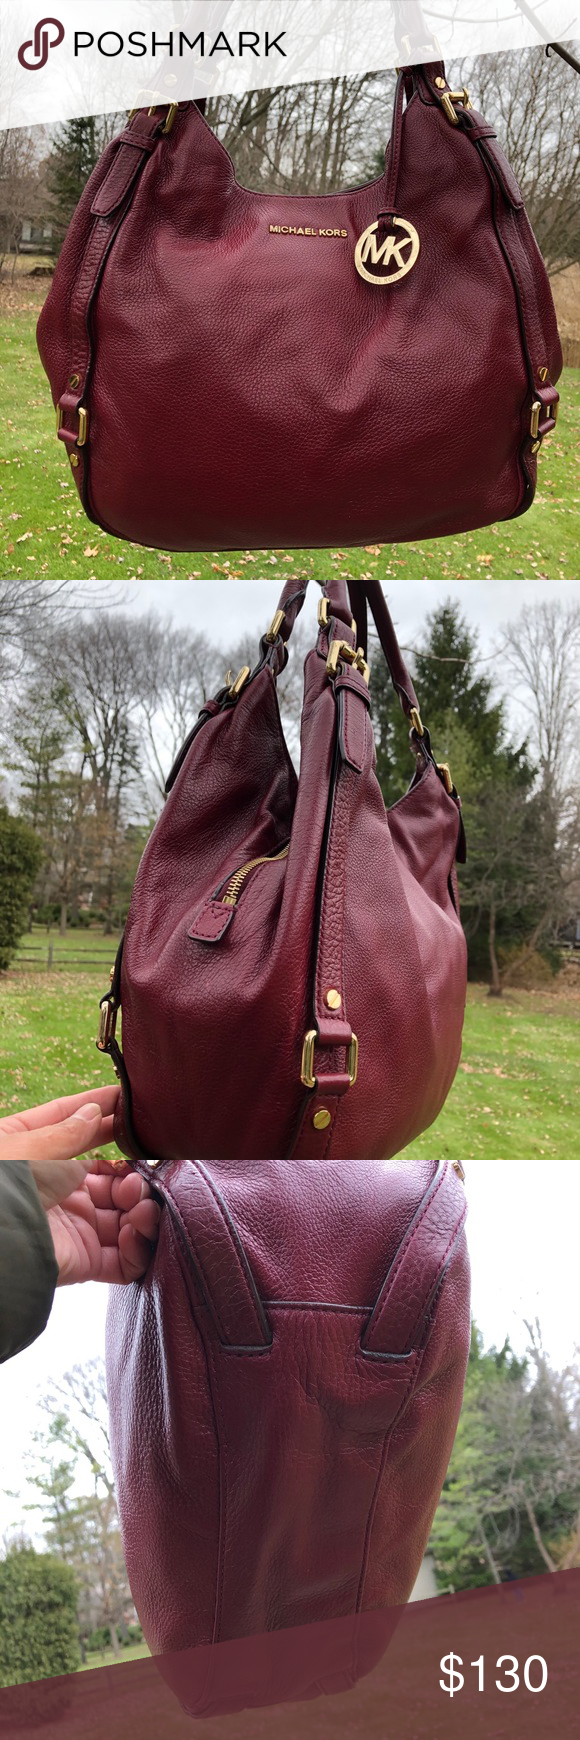 "🔥SALE 🔥MICHAEL KORS BURGUNDY SHOULDER BAG In good condition  Minor peeling and ink mark L 11.5"" W 14.5"" Color: Burgundy 🔥Price is firm 🔥 Michael Kors Bags Shoulder Bags"